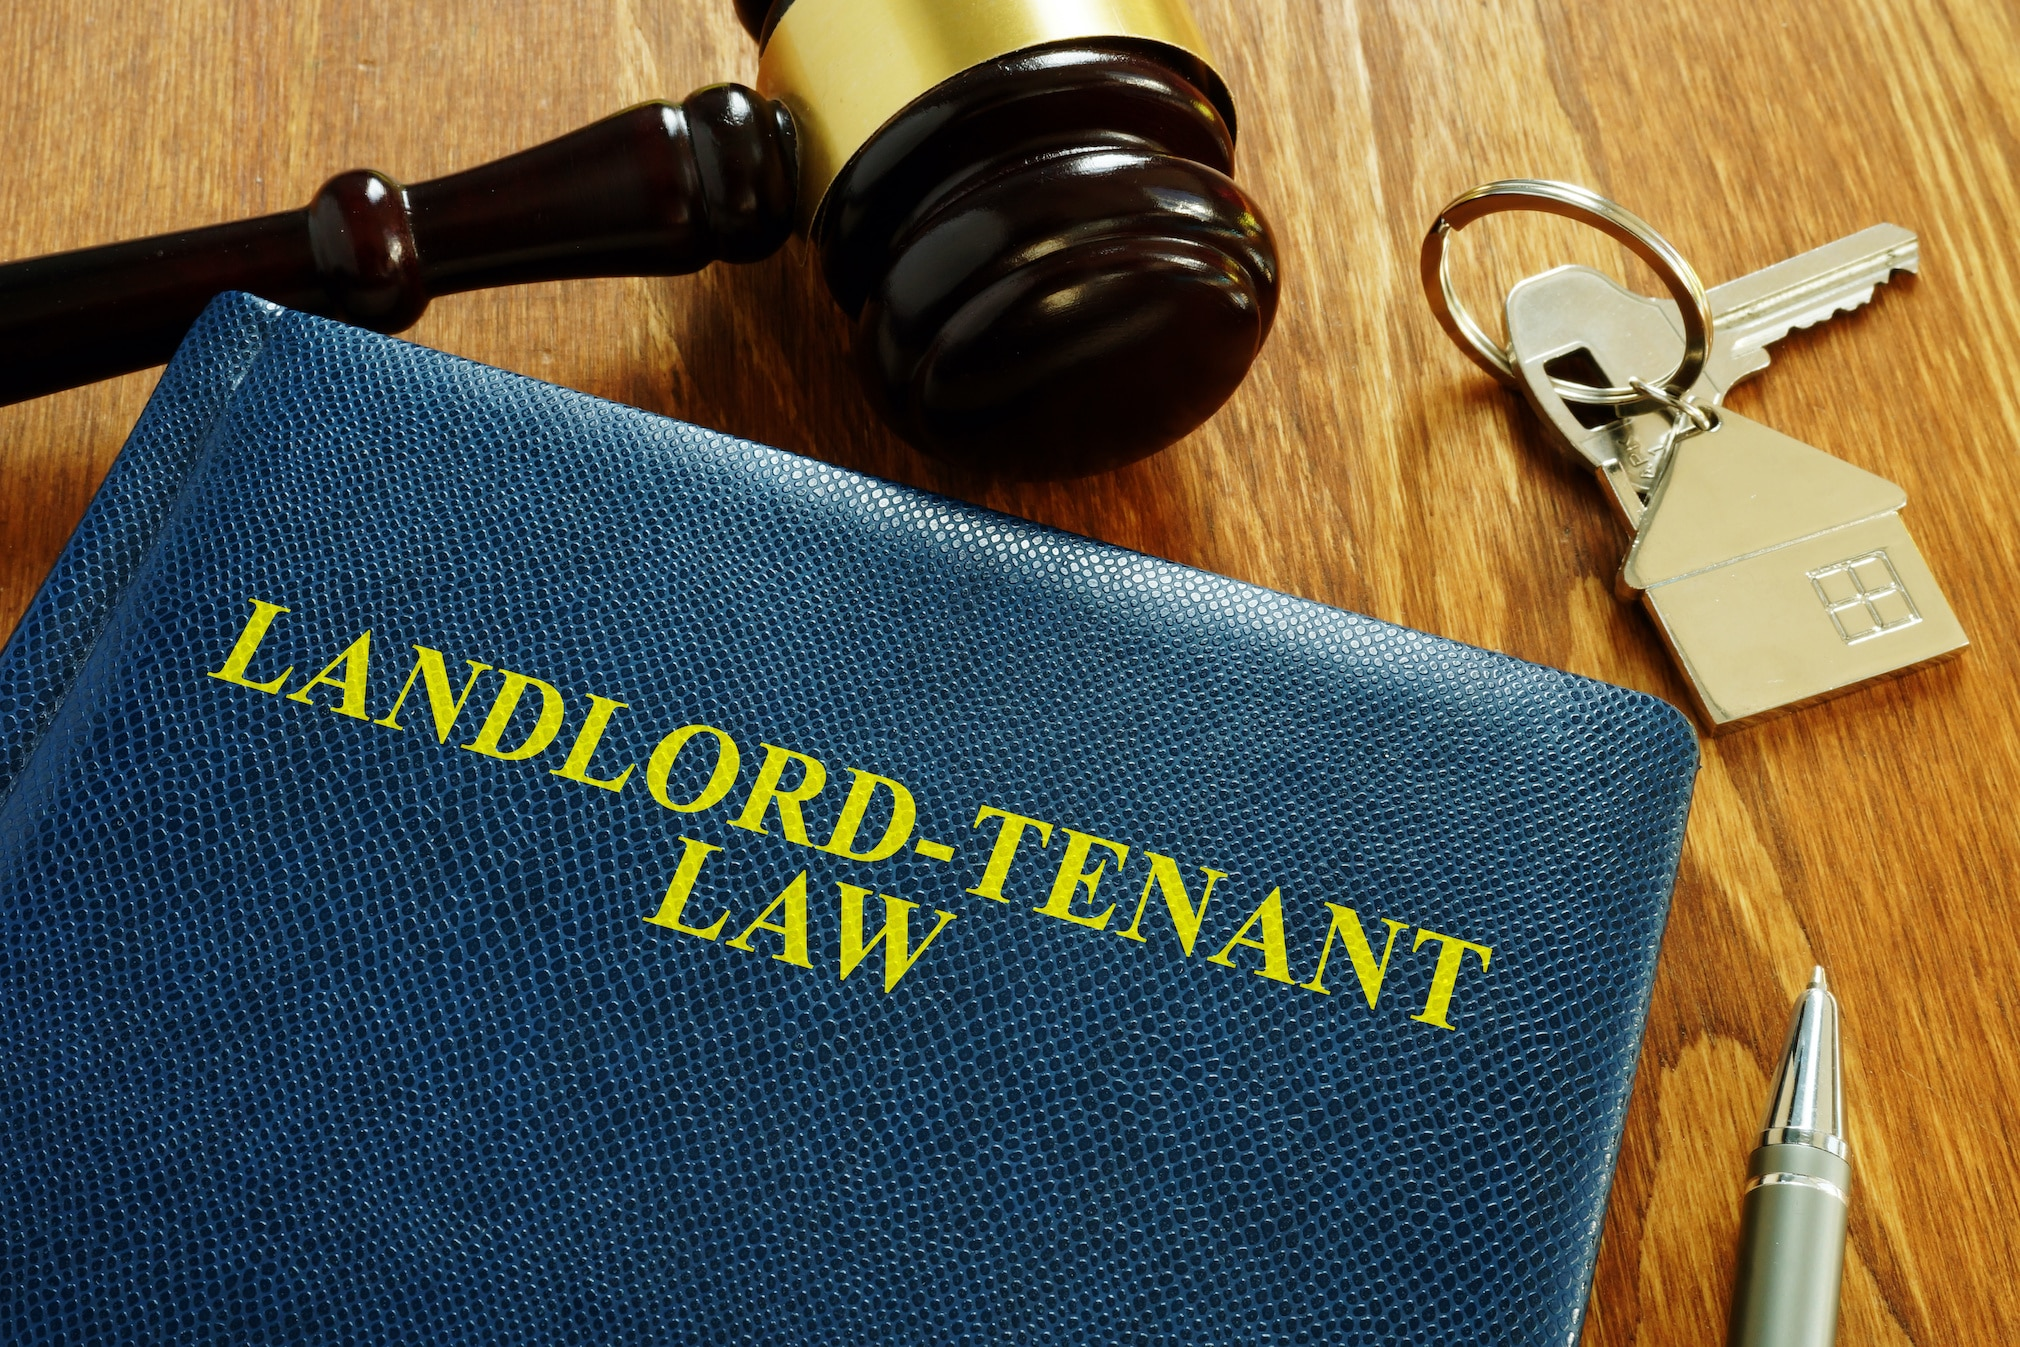 Change In Phila. Code Limits Landlords' Right To Evict Tenants Within City